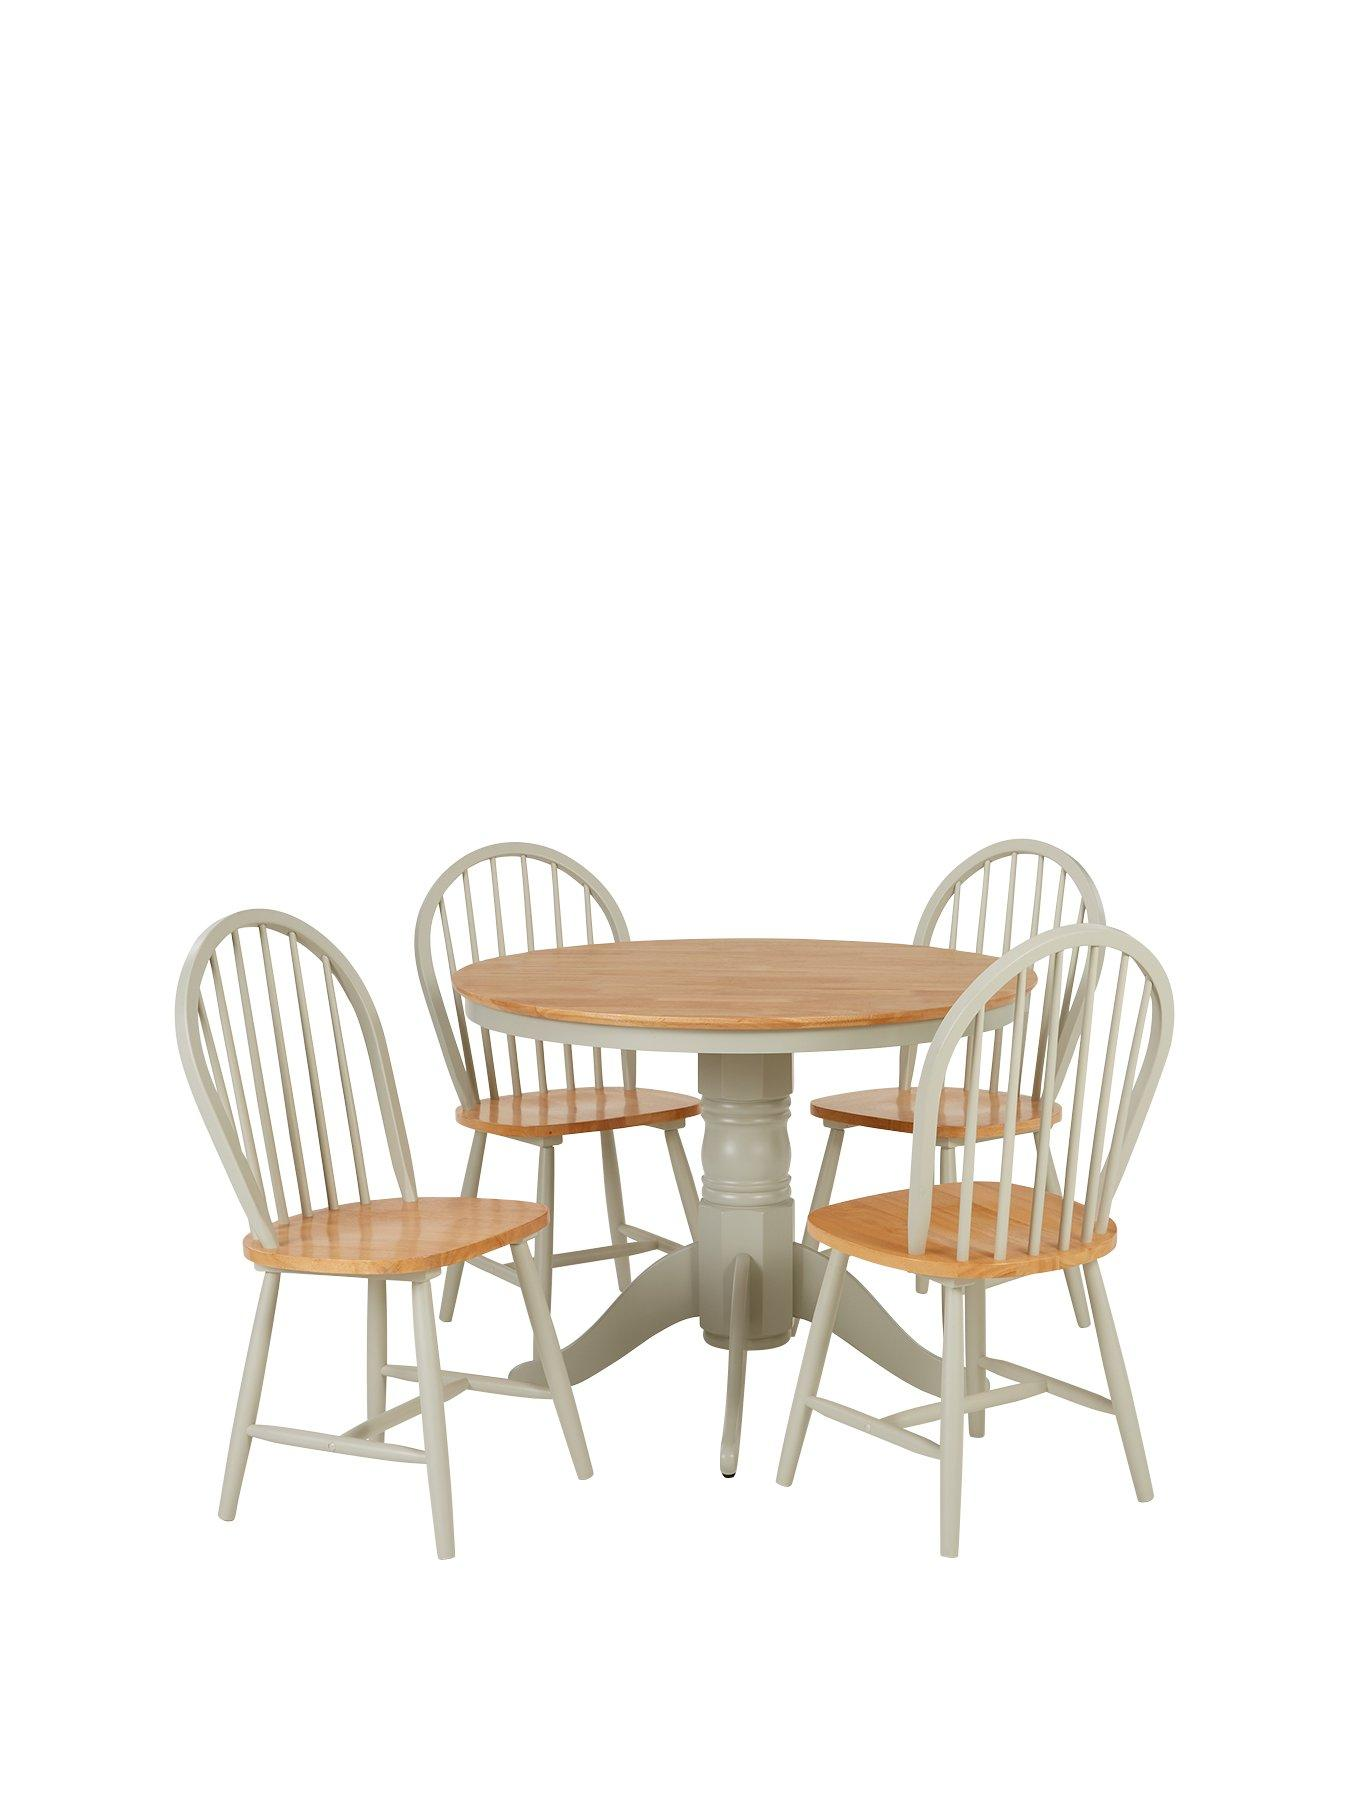 kentucky round table and chairs Off 9   www.bashhguidelines.org